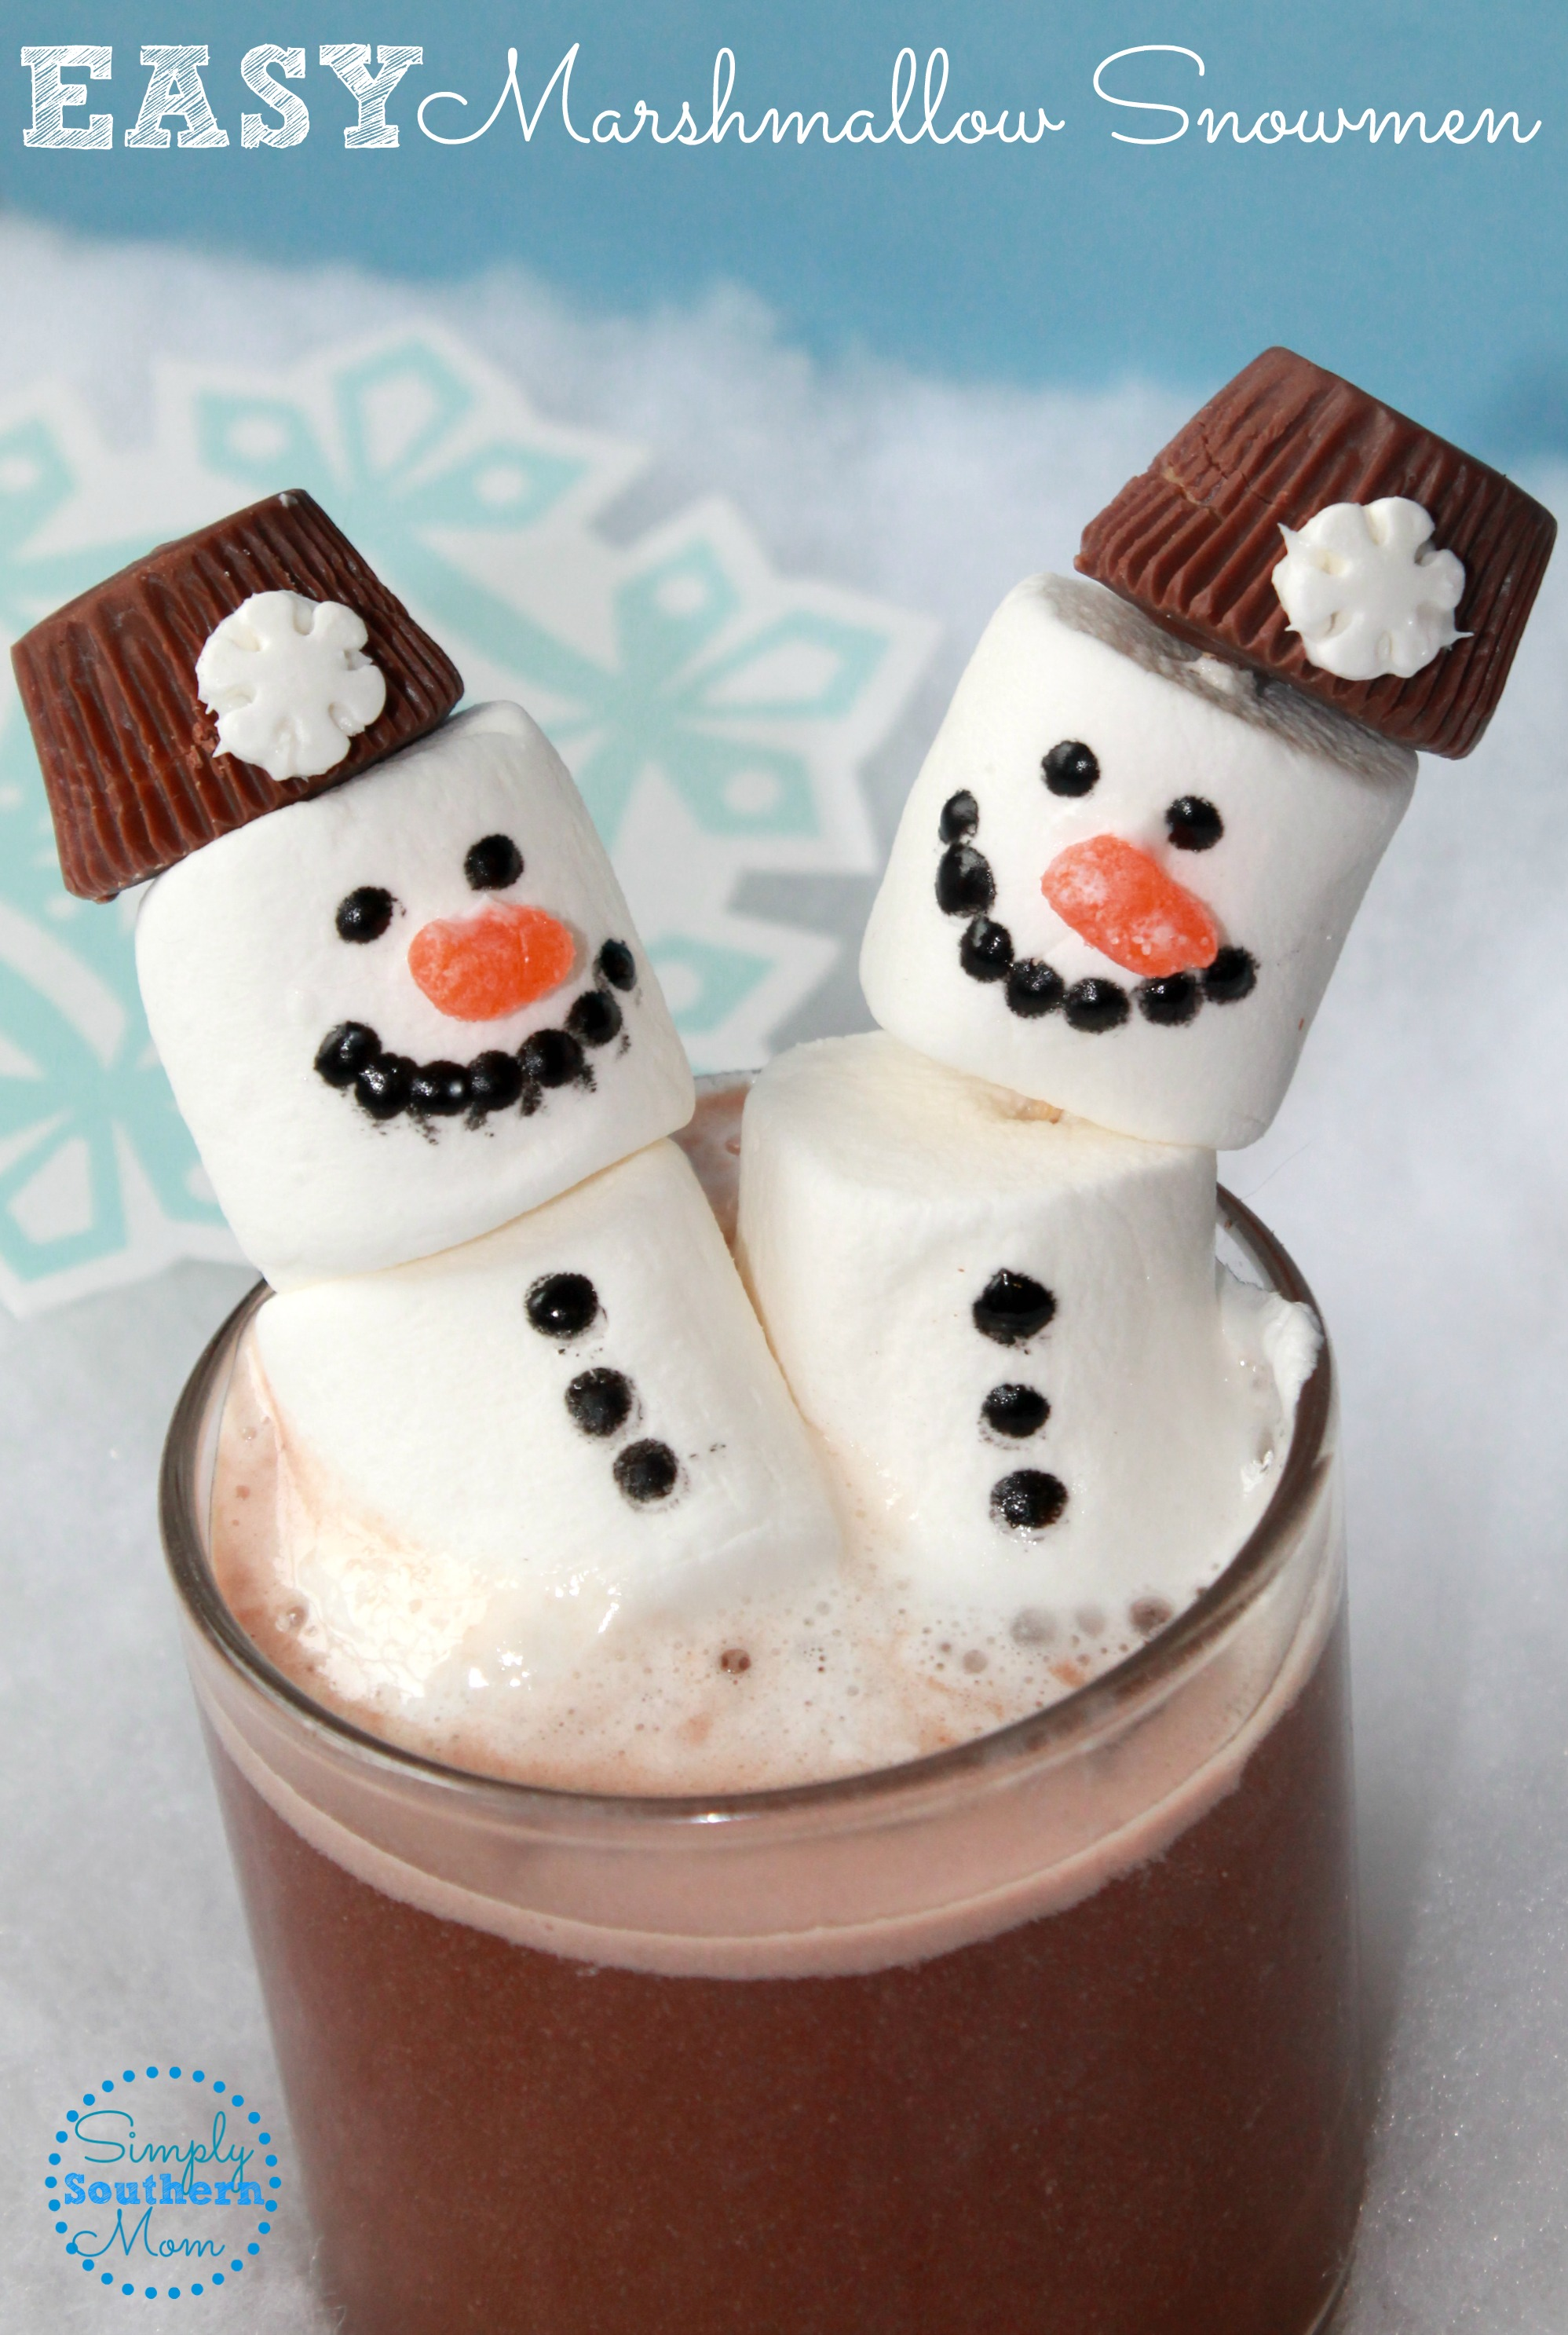 Easy Snowman Snack: How To Make An Easy Marshmallow Snowman